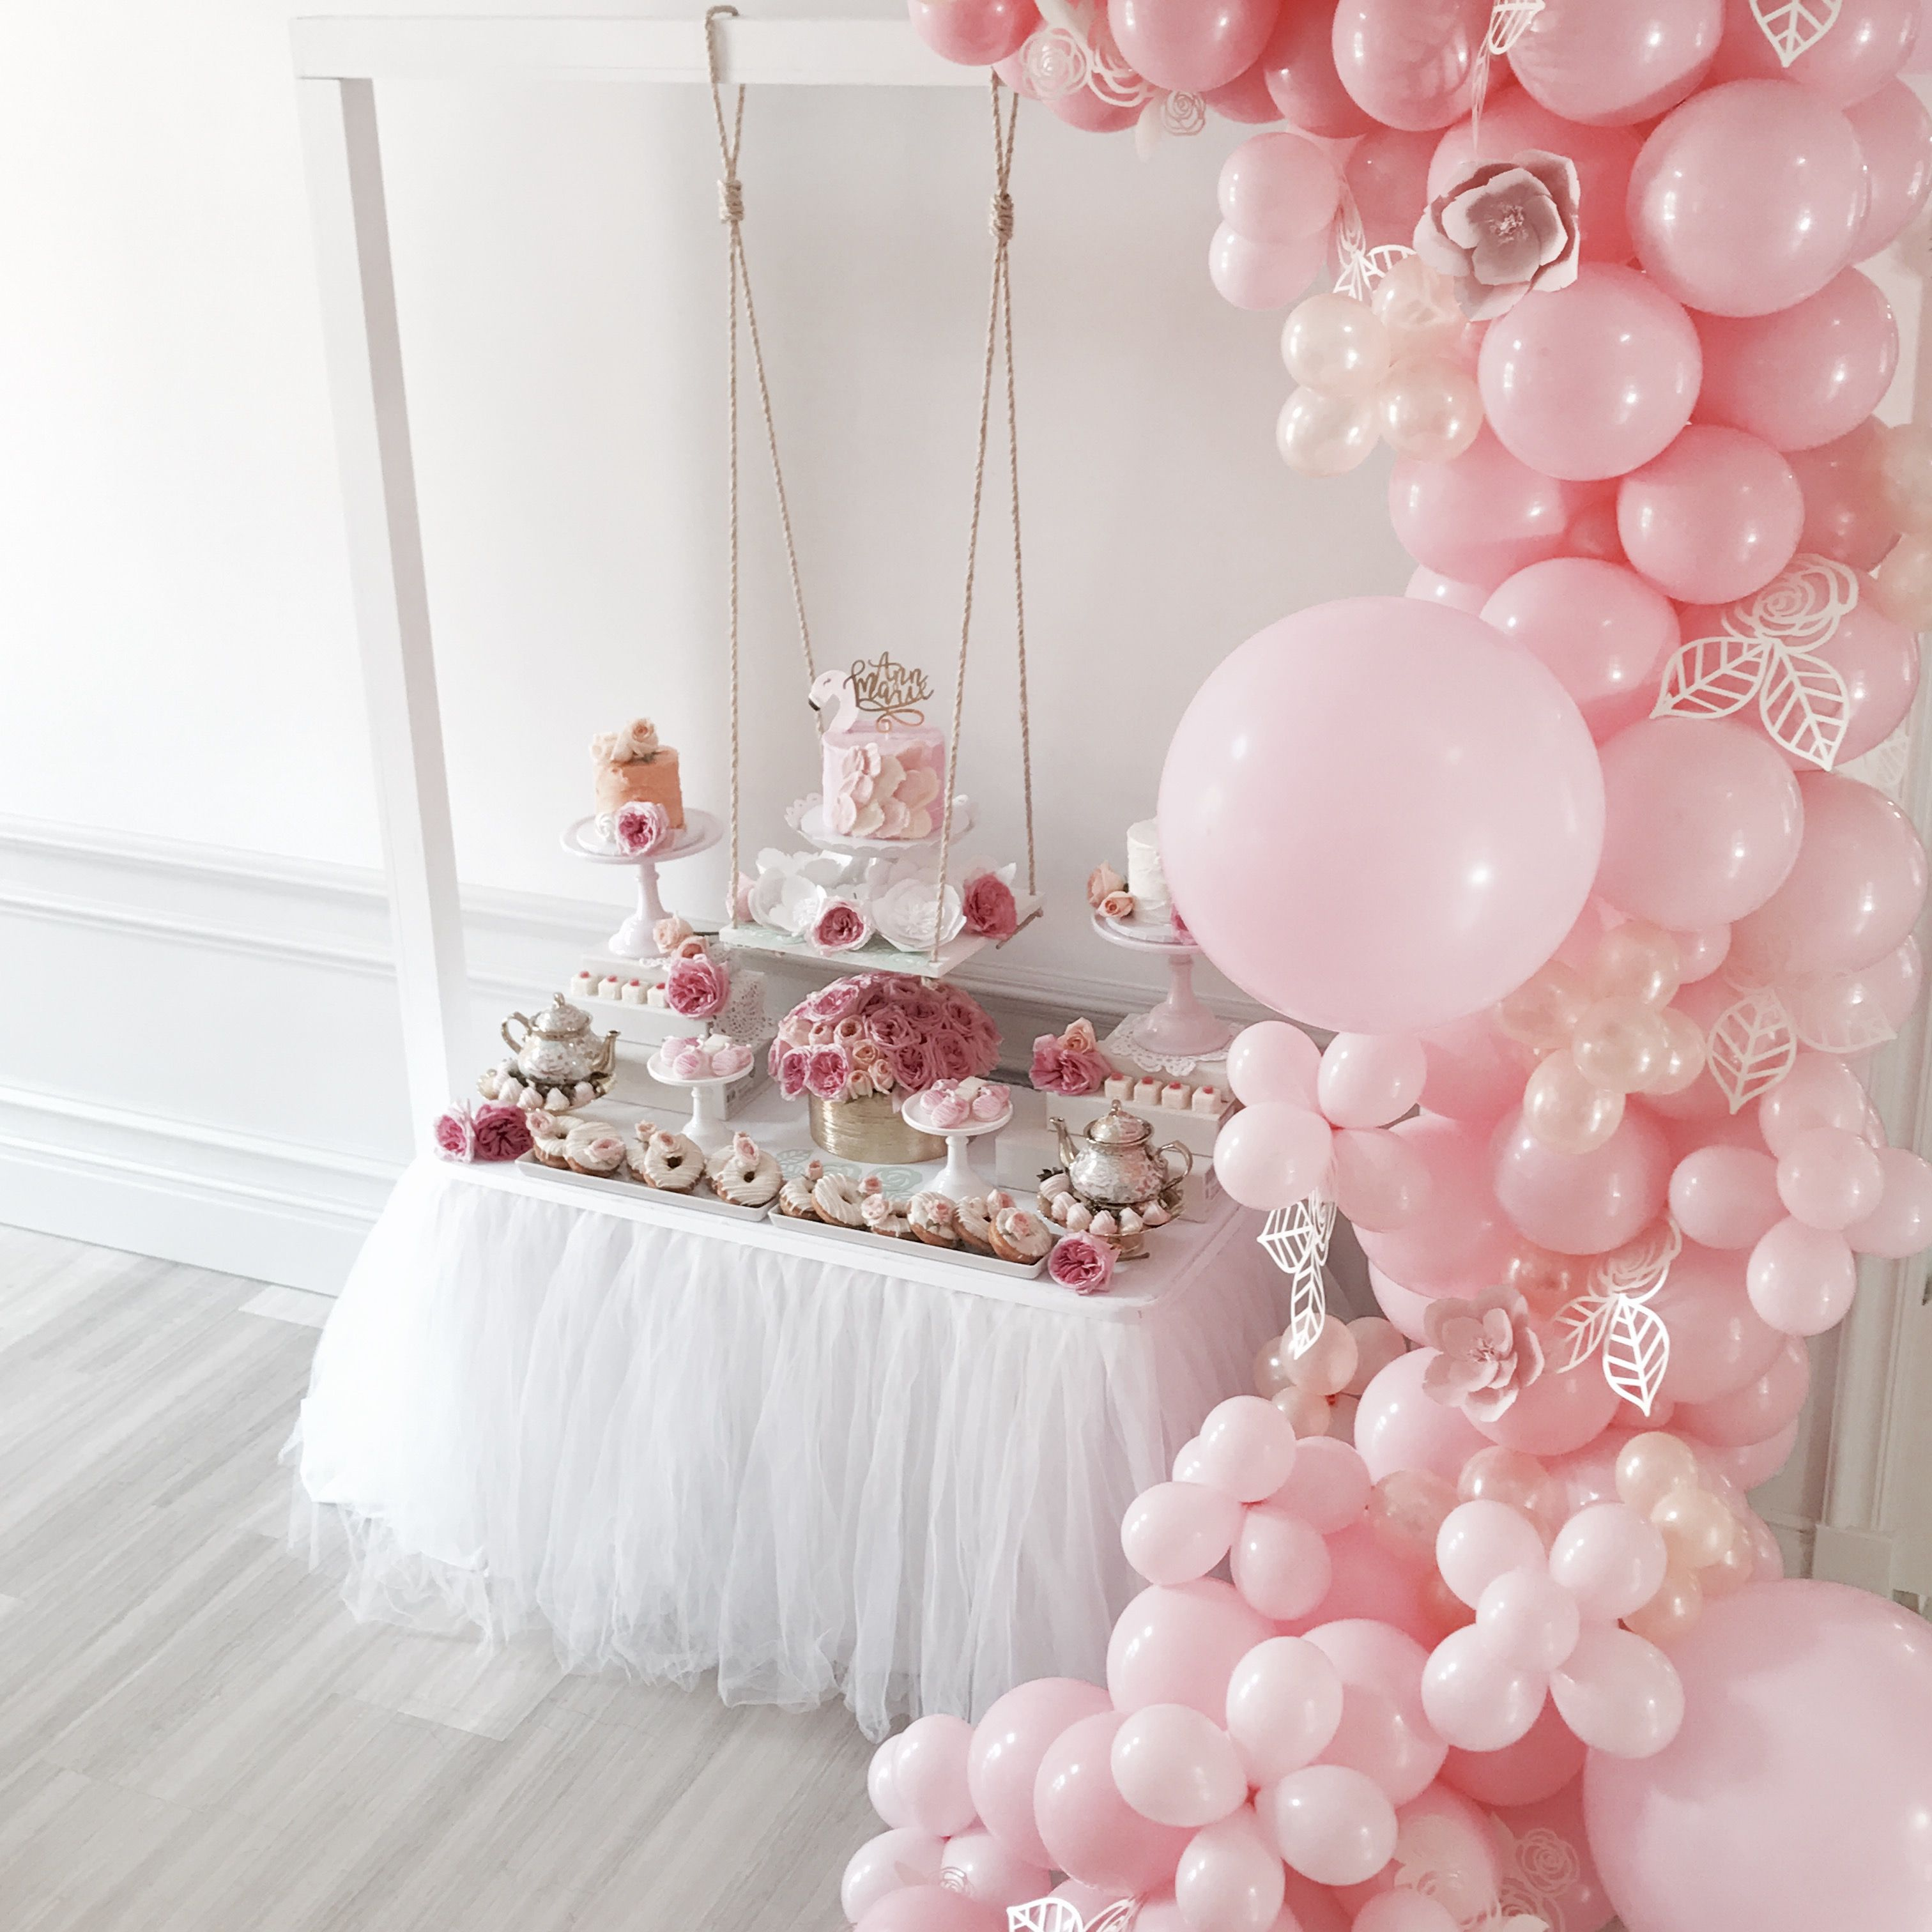 Blushing Bride To Be  Oh Its Perfect #Balloon Arch